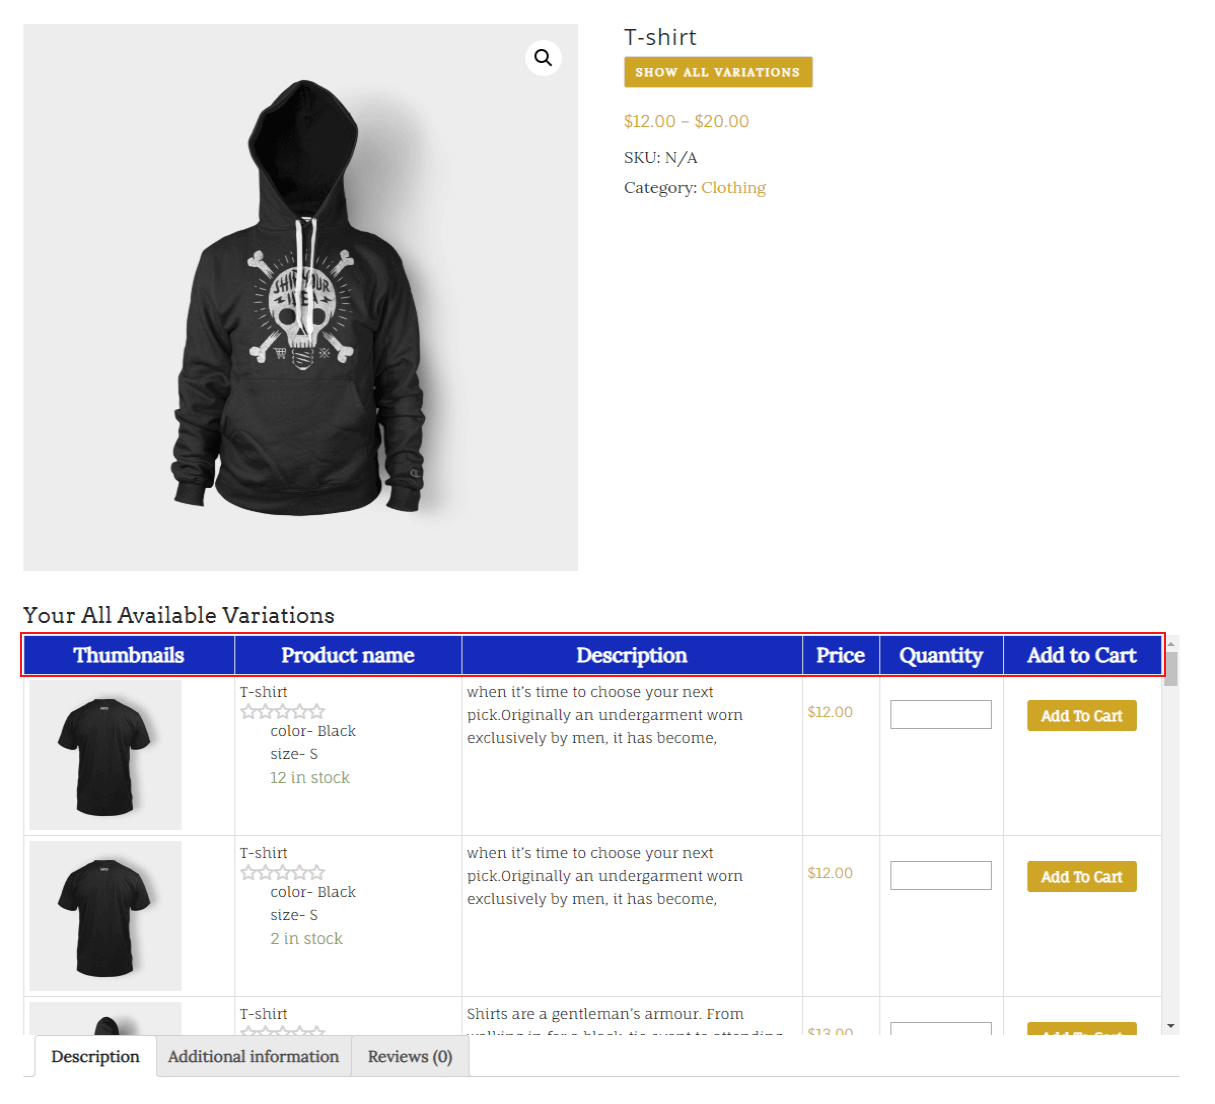 woocommerce-table-view-for-variations-change-header-color